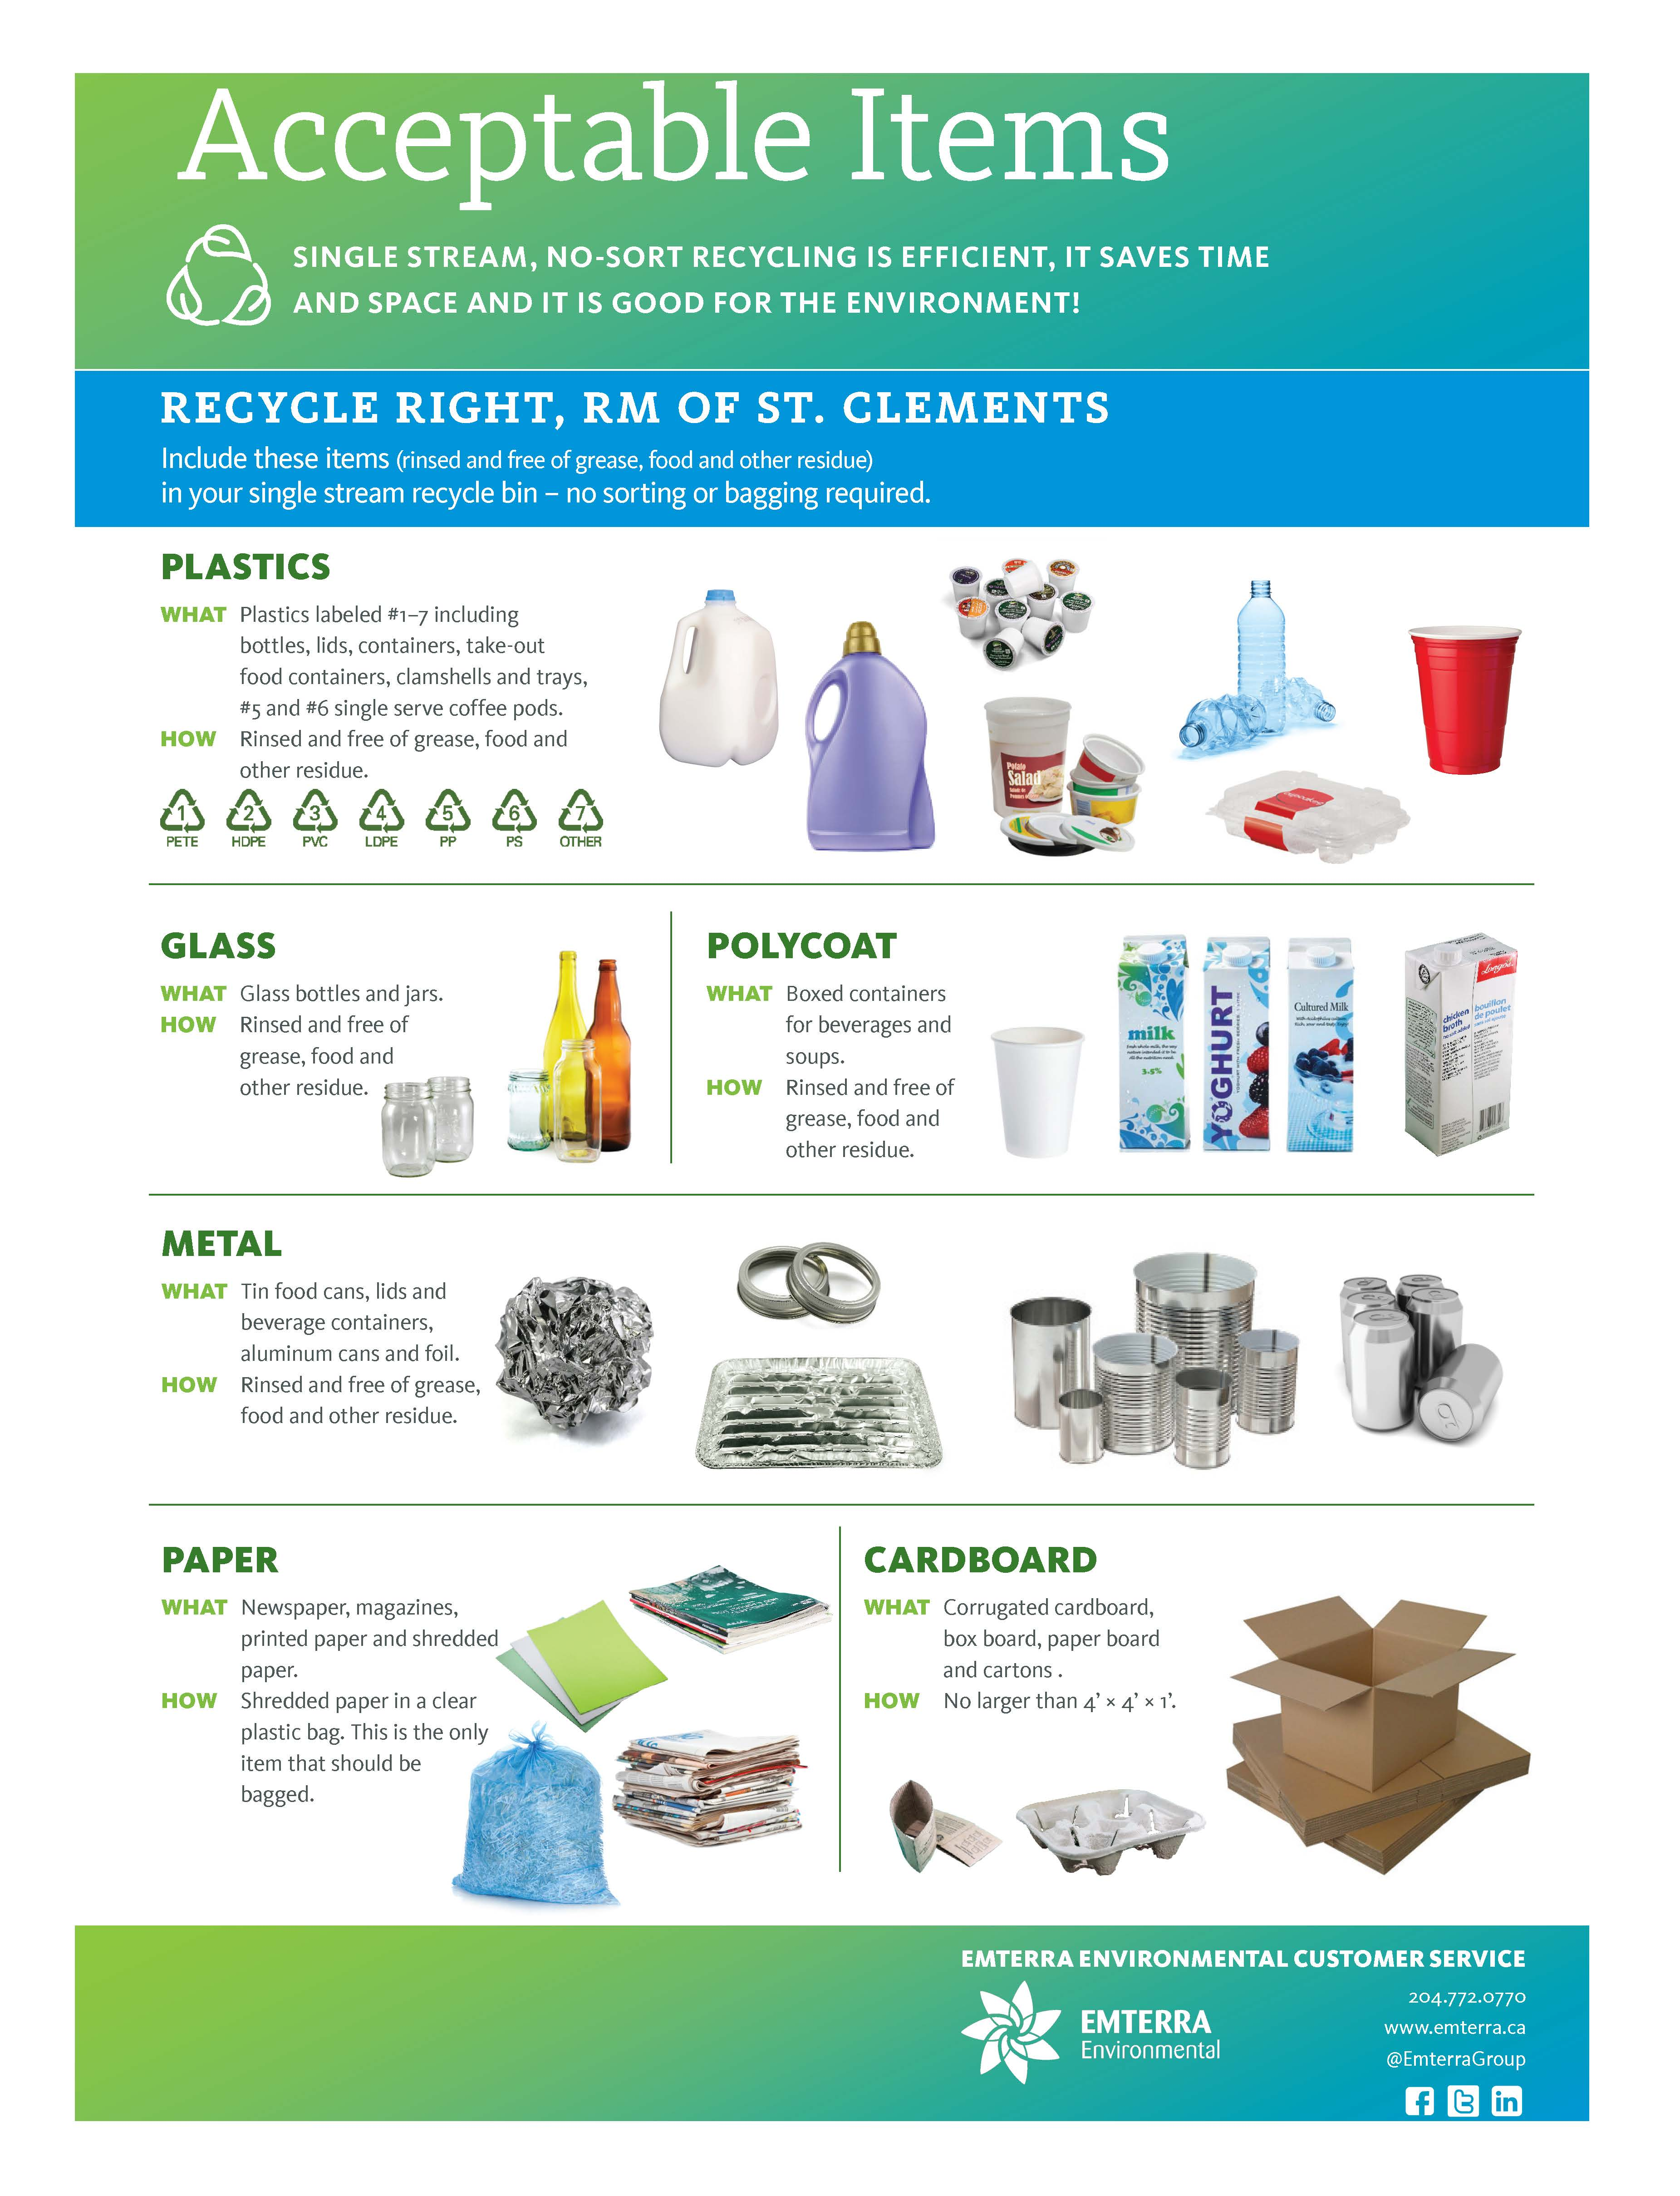 RM of St. Clements Curbside Pickup Recyclable Items